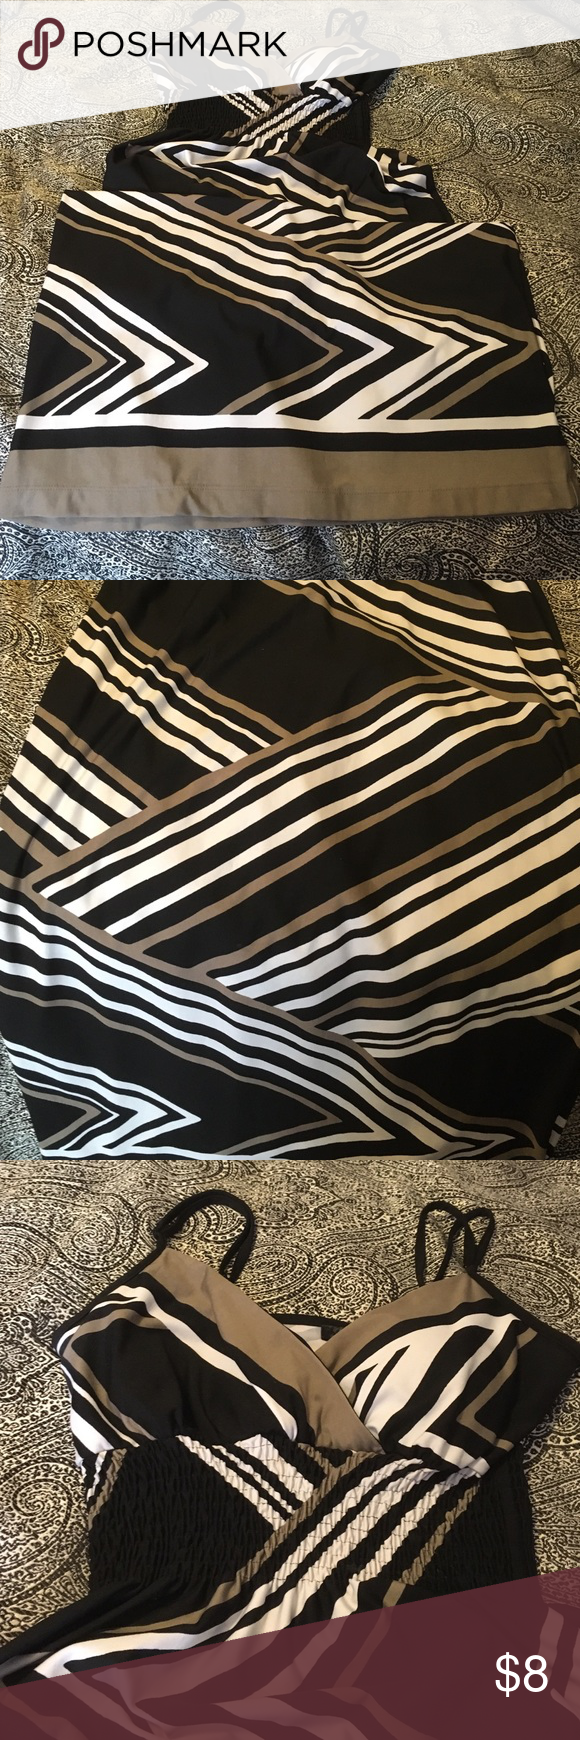 Diagonal stripe maxi dress. Diagonal criss-cross maxi dress with adjustable straps. This dress has been used a bit but still has plenty of life left.  The colors are black, white, and deep khaki/dusty olive. Snap Dresses Maxi